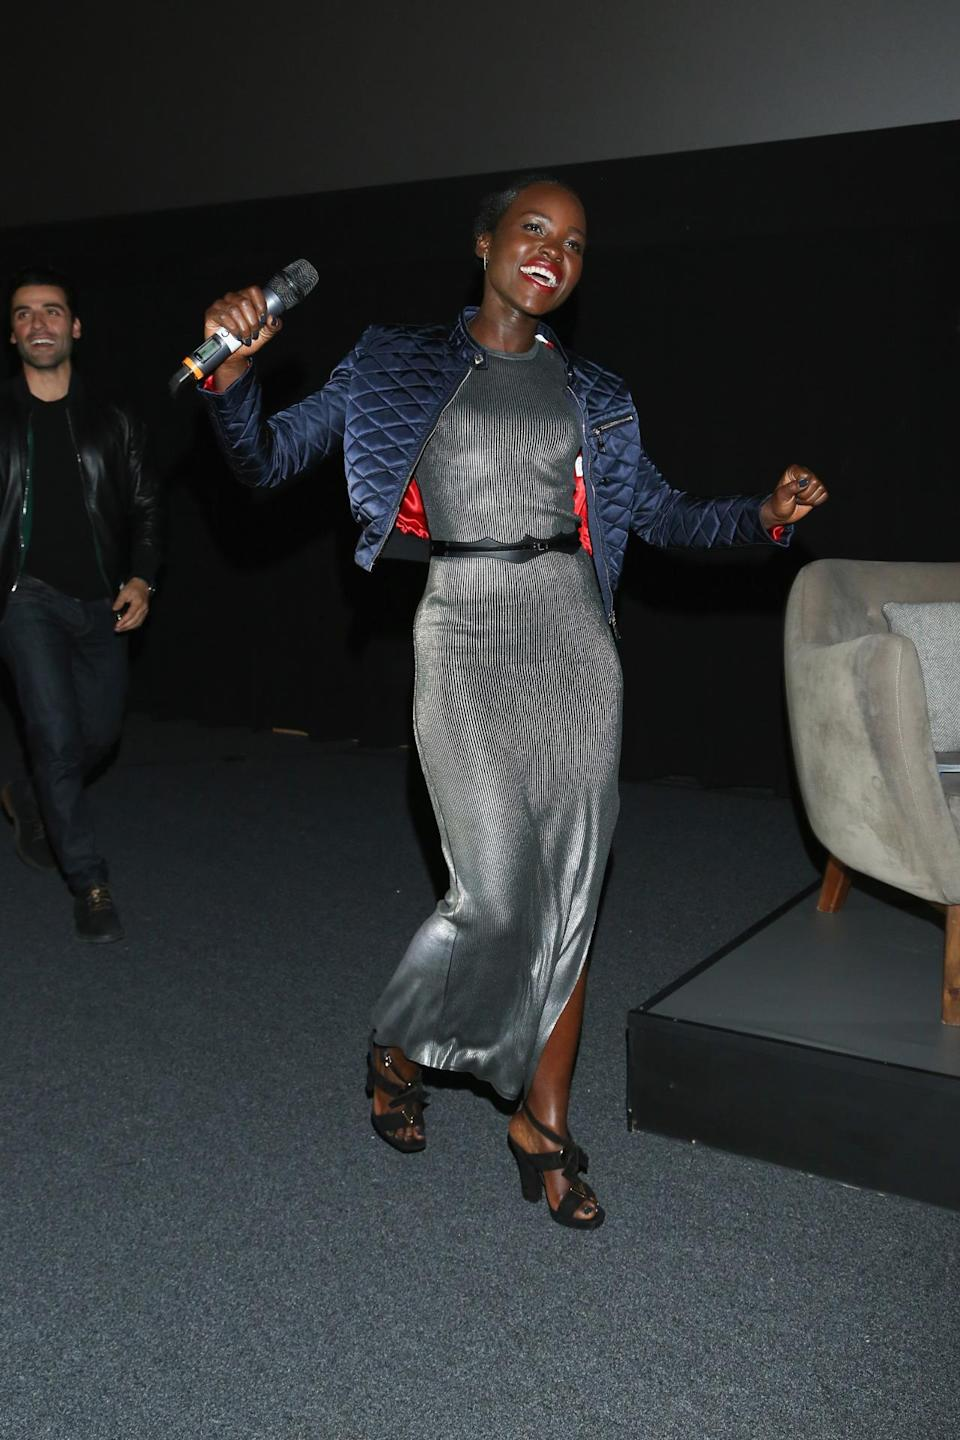 <p>For the Mexico City premiere of <i>Star Wars: The Force Awakens</i>, Nyong'o wore this season's must-have trend: the bomber jacket. Paired with strappy black sandals and a slinky silver dress by Louis Vuitton, she's obviously ready to party hard.</p><p><i>Photo: Getty Images</i></p>